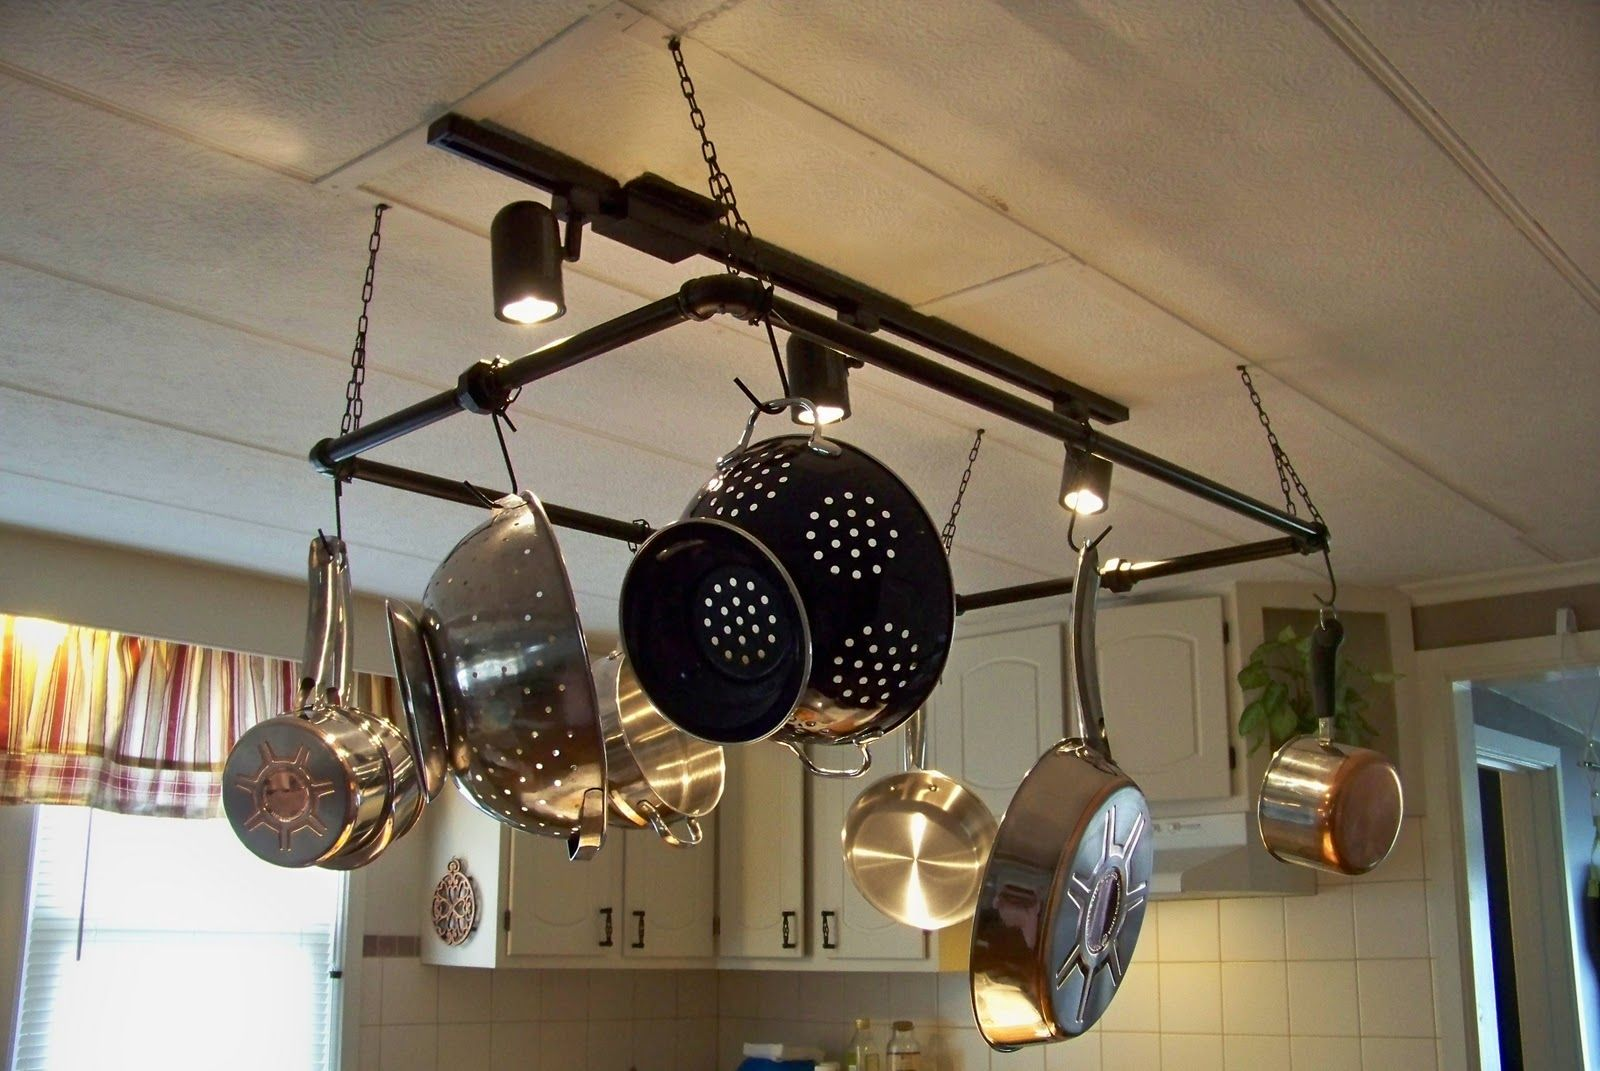 Home Depot Pot Rack Brian Built This Pot Rack And Hung New Lights Over The Kitchen